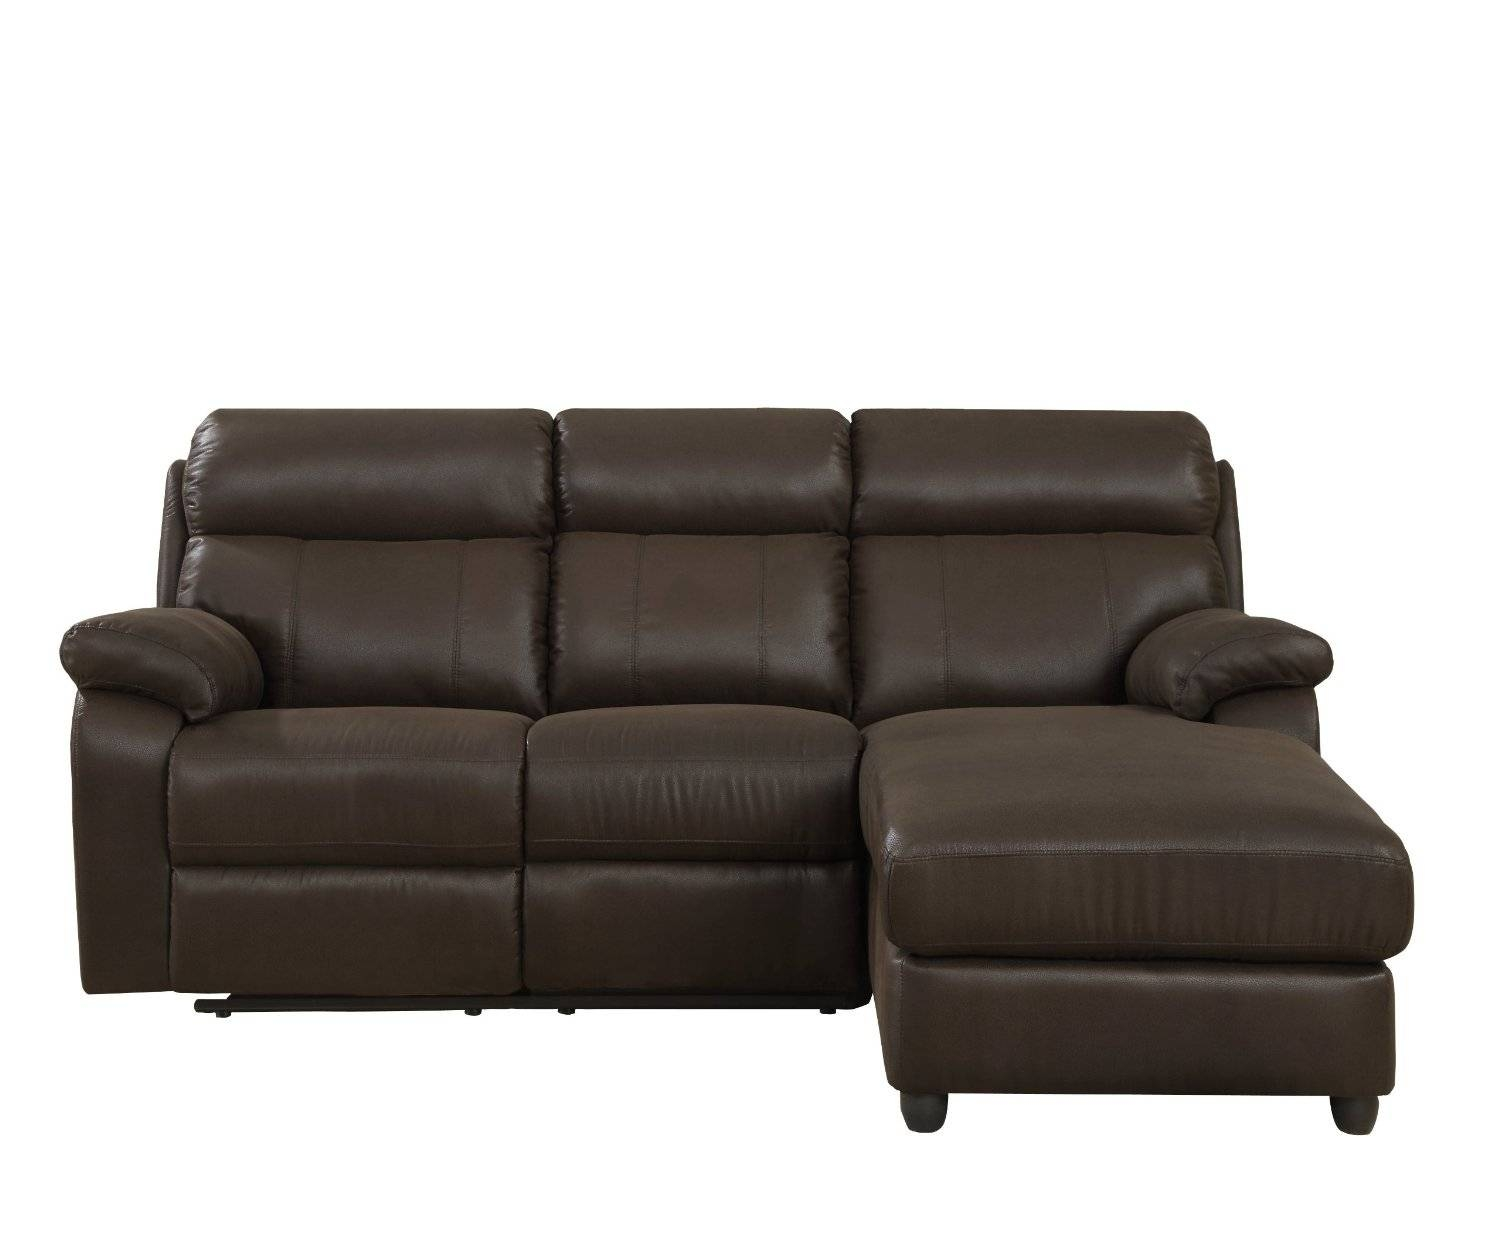 Small Sectional Sofa With Chaise. Small Scale Sectional Sofa With for Modern Sectional Sofas for Small Spaces (Image 20 of 25)